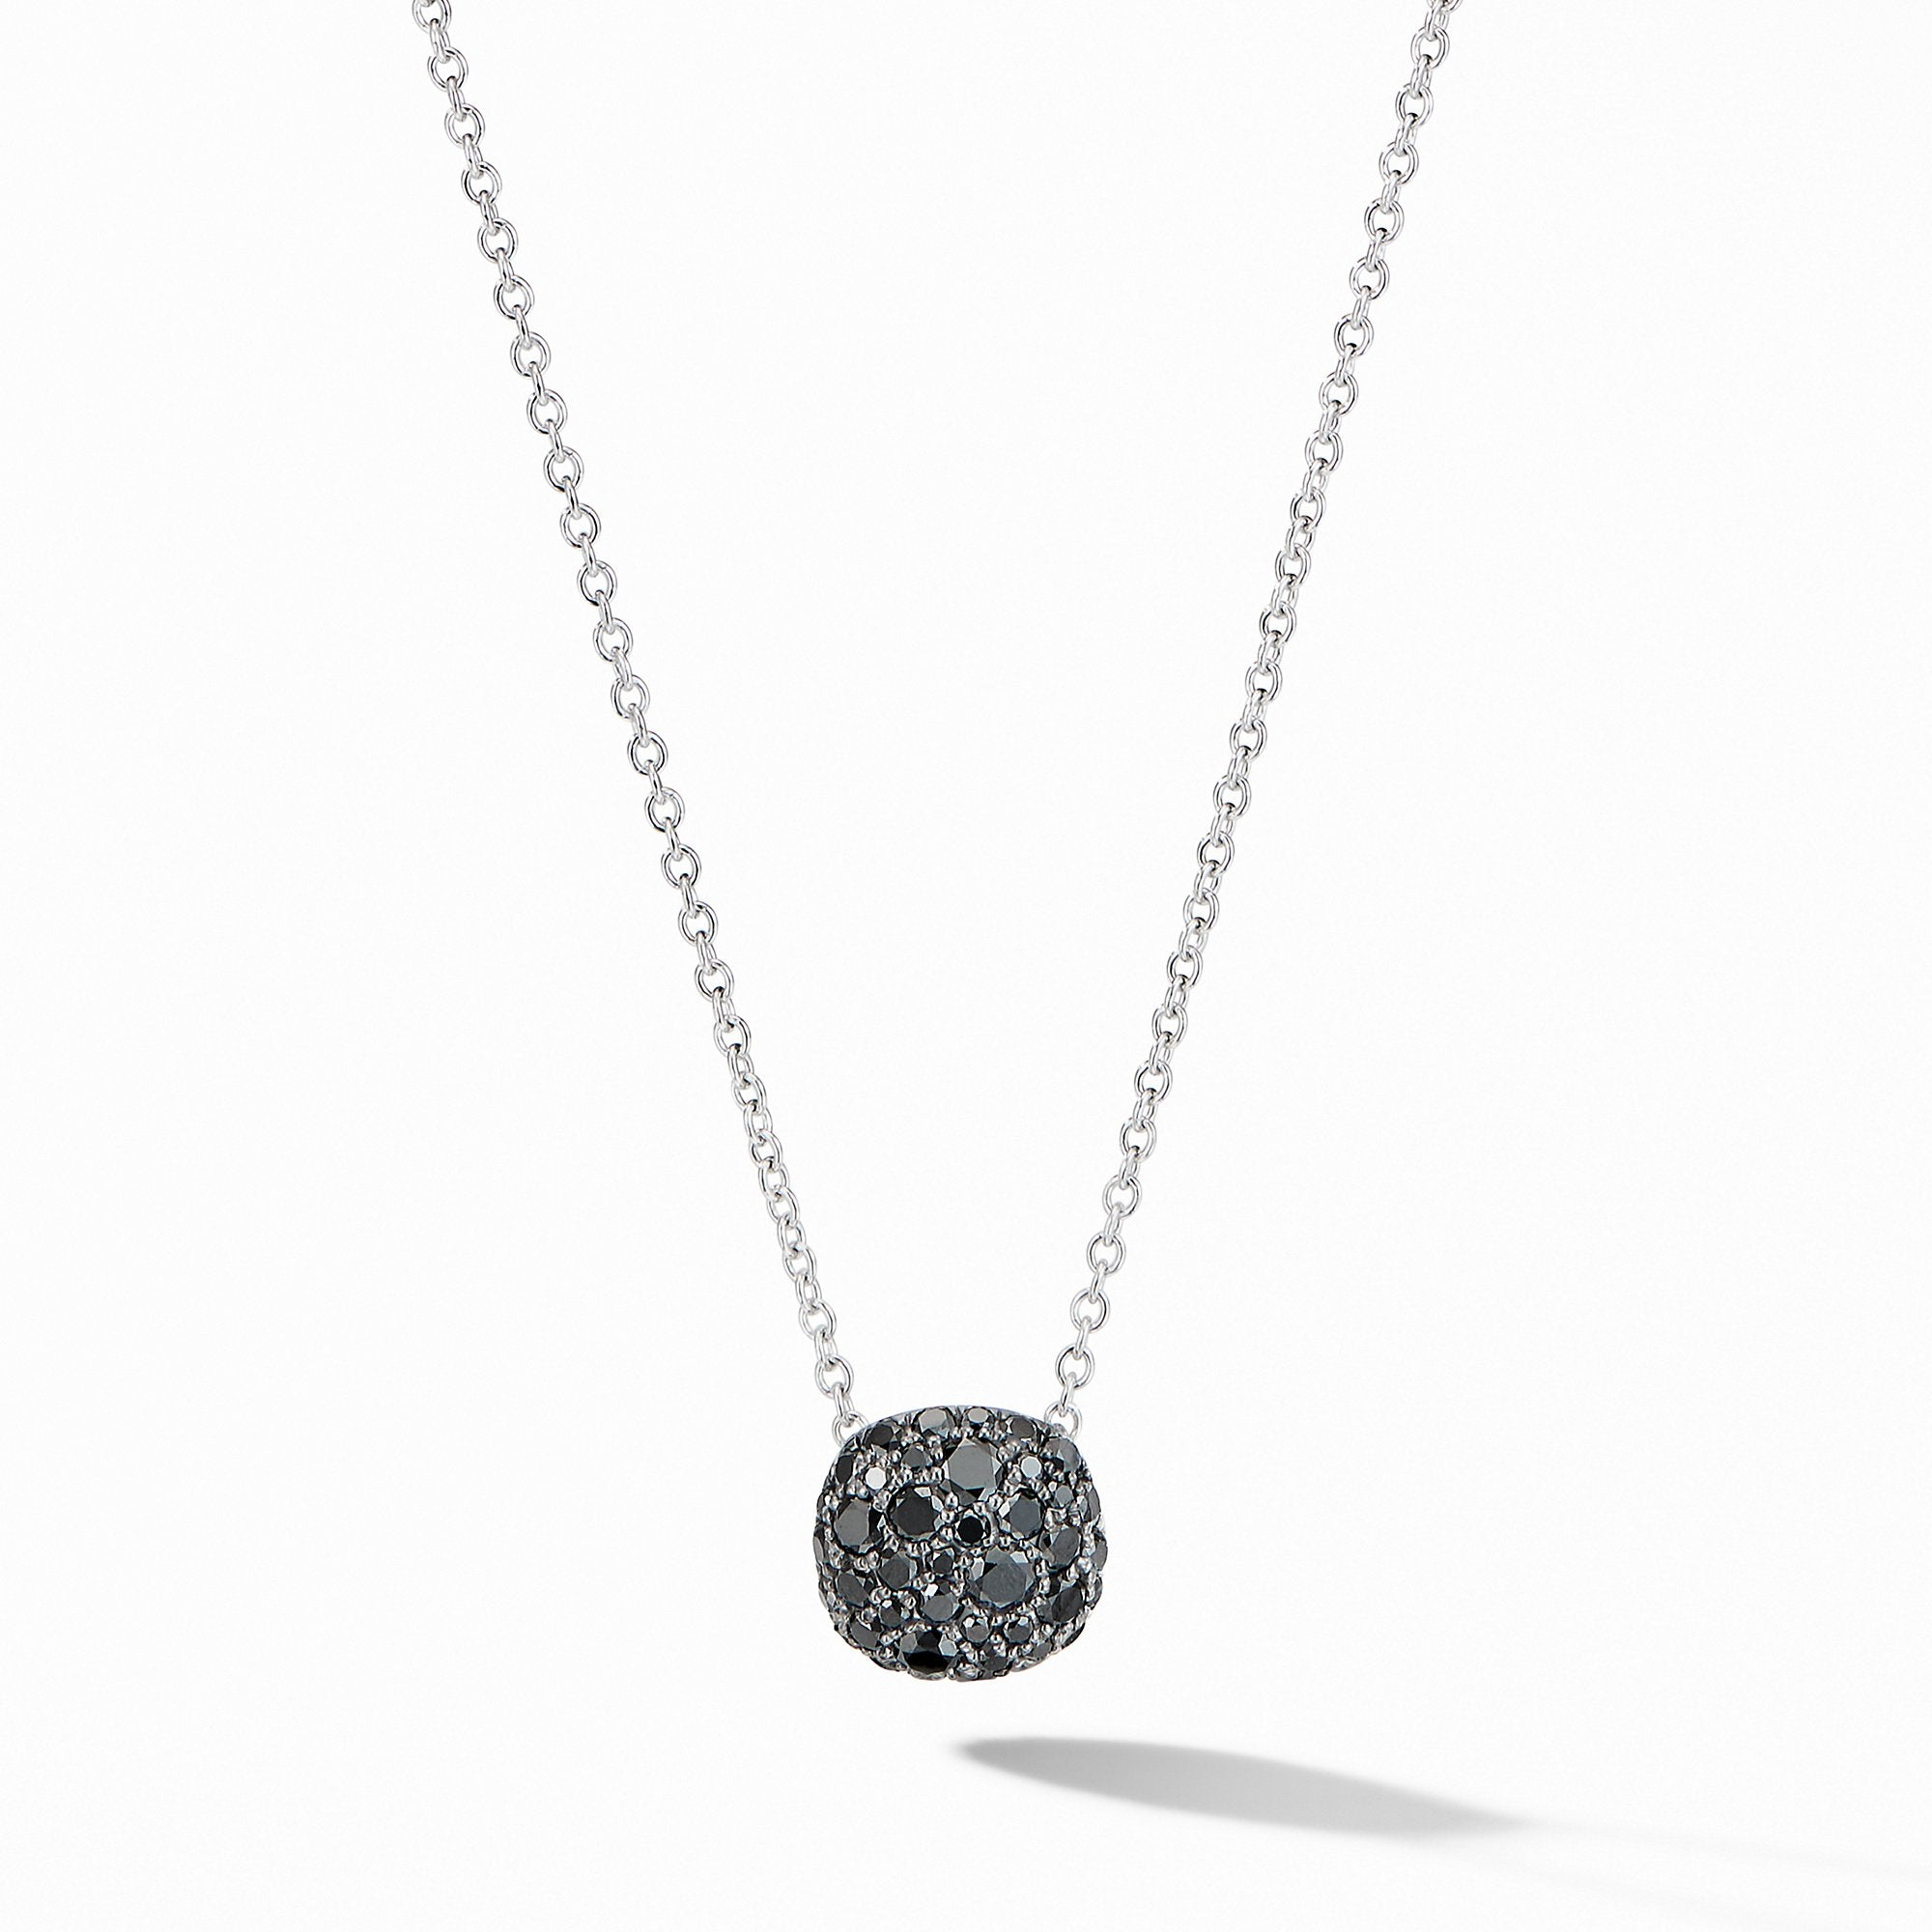 Cushion Stud Pendant Necklace in 18K White Gold with Pavé Black Diamonds